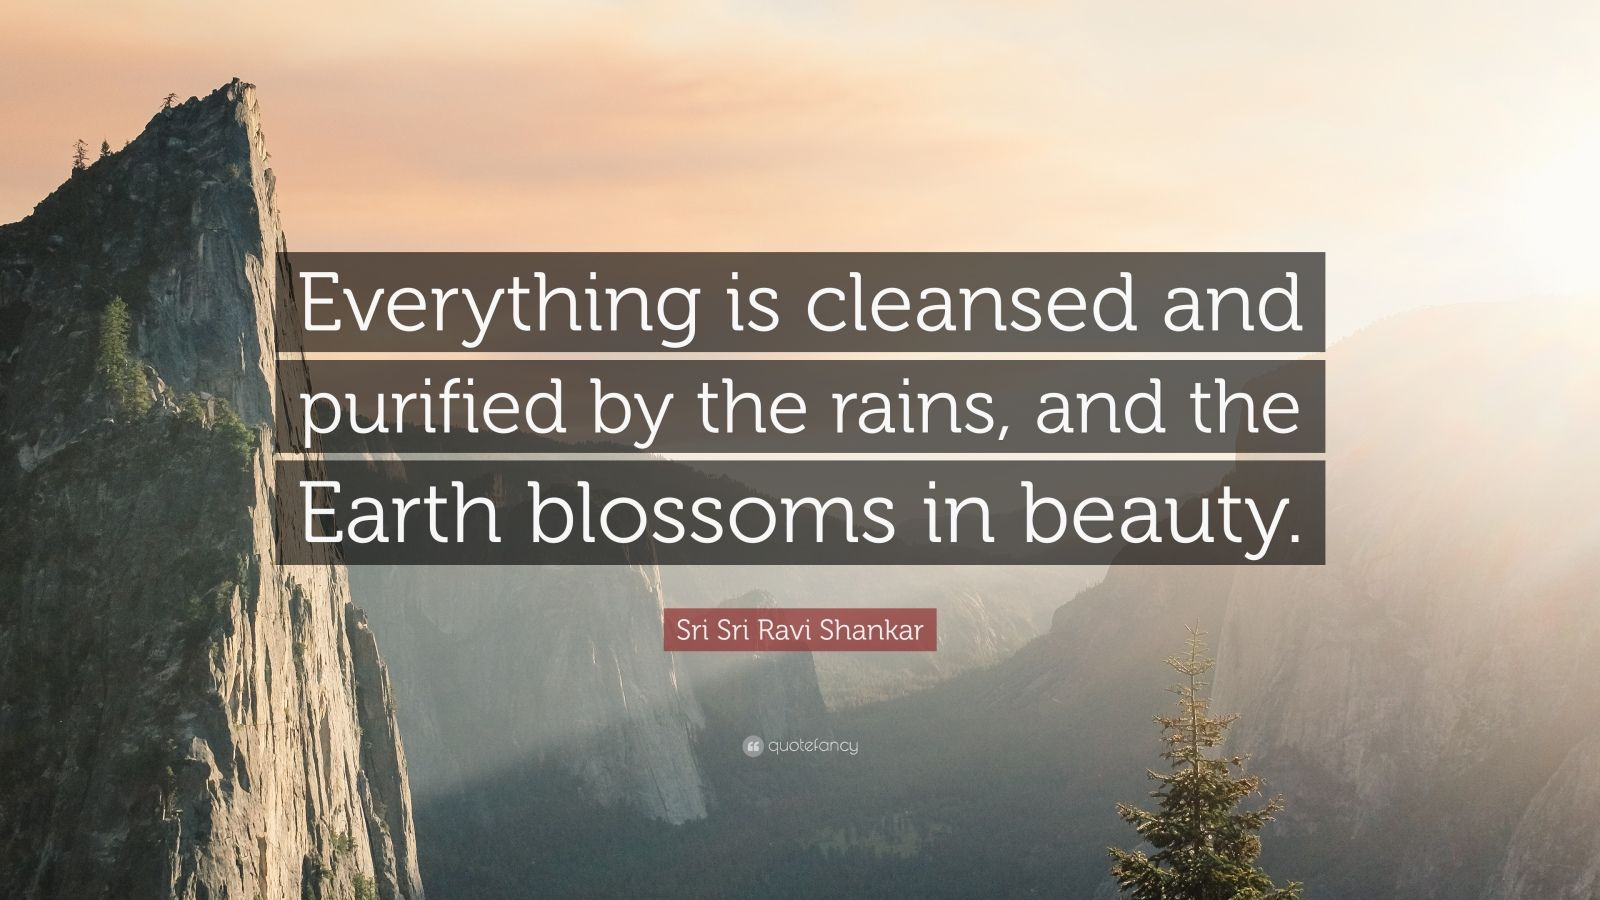 """Sri Sri Ravi Shankar Quote: """"Everything is cleansed and purified by the rains, and the Earth blossoms in beauty."""""""